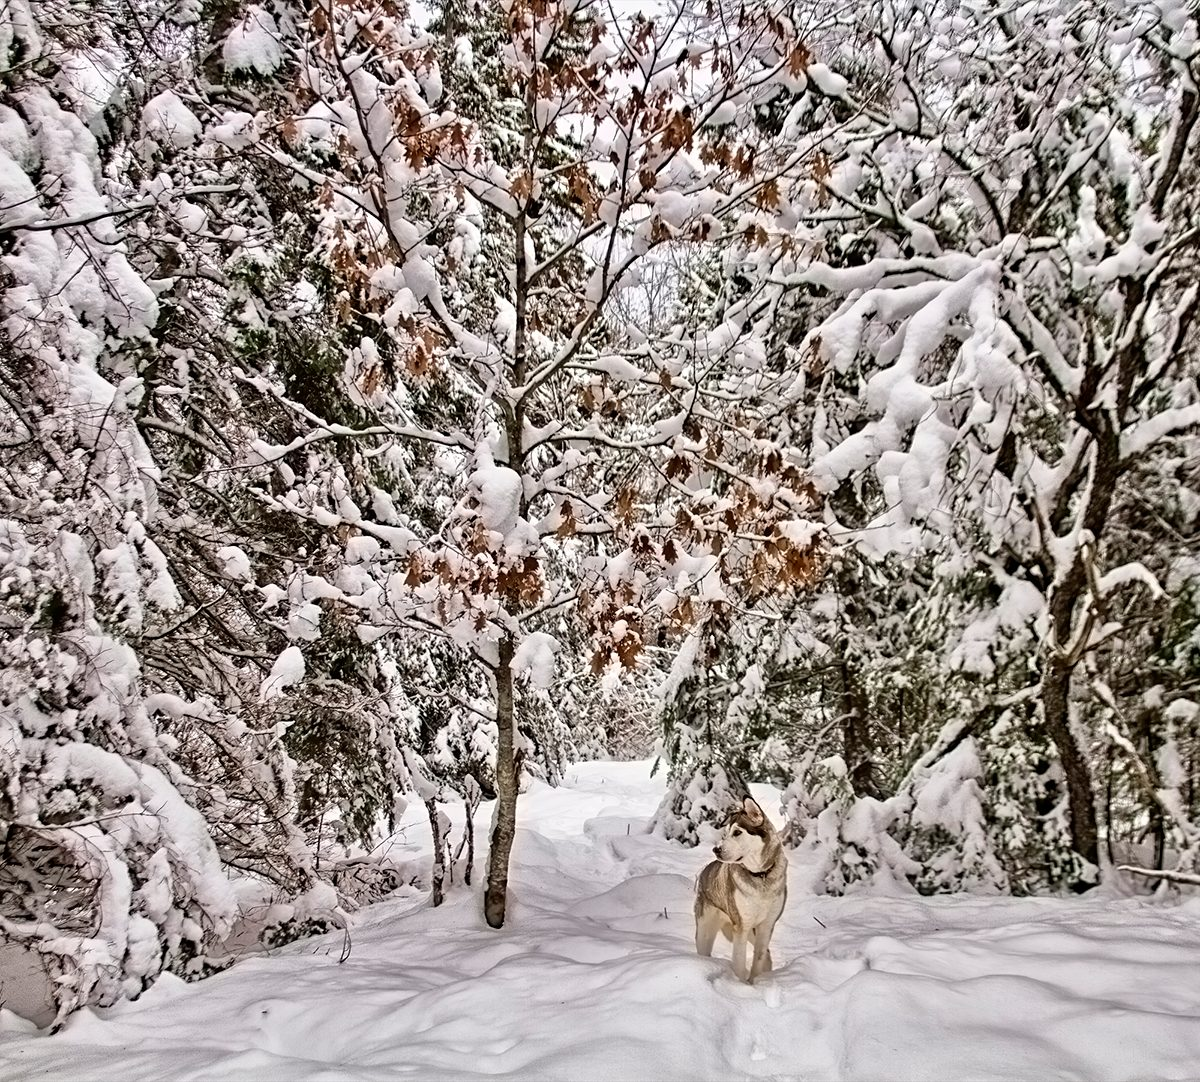 My Happy Place - Snowy Forest With Dog